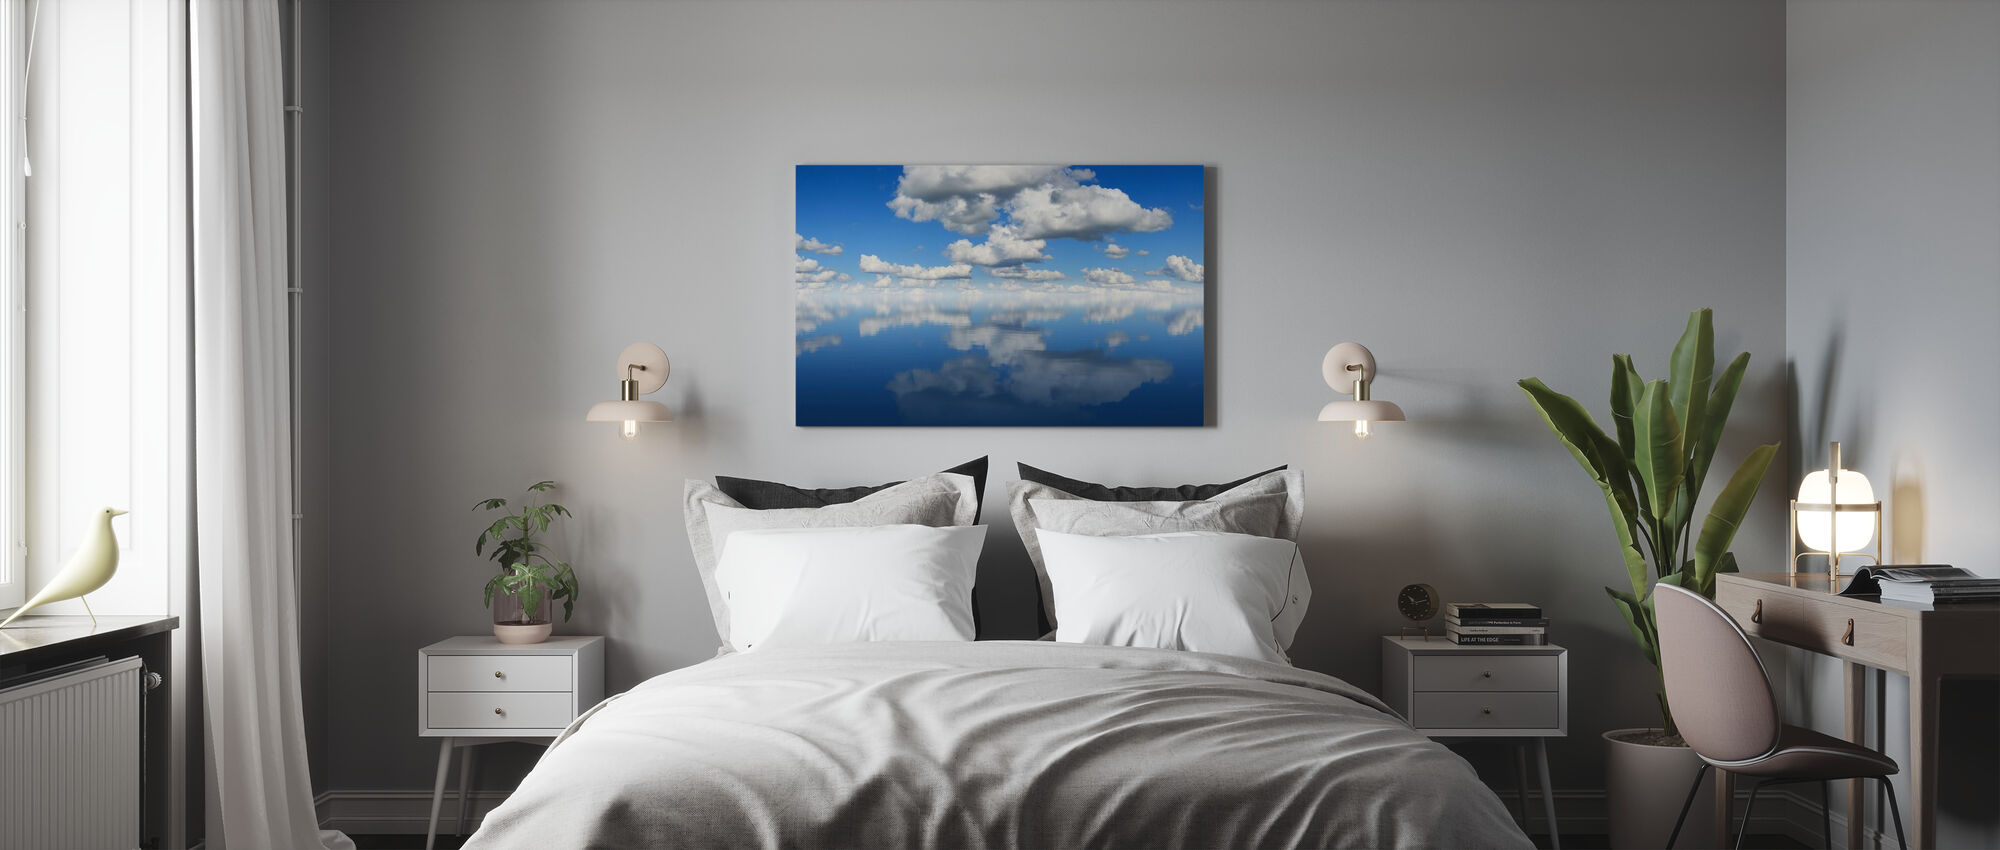 Mirror Sea - Canvas print - Bedroom